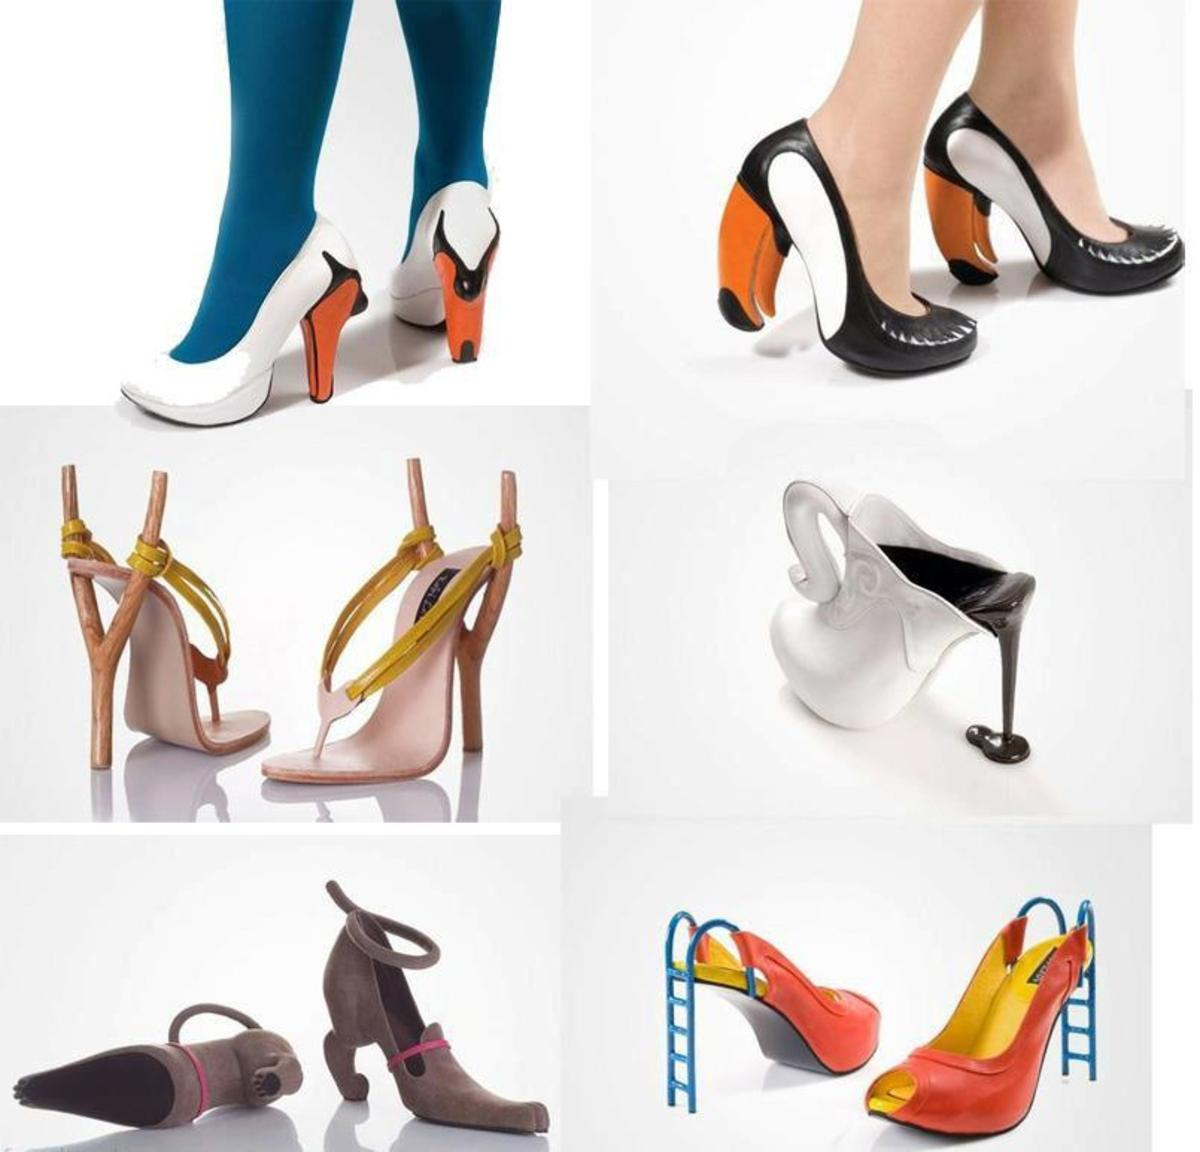 Unique high heels can inspire you or make you laugh.